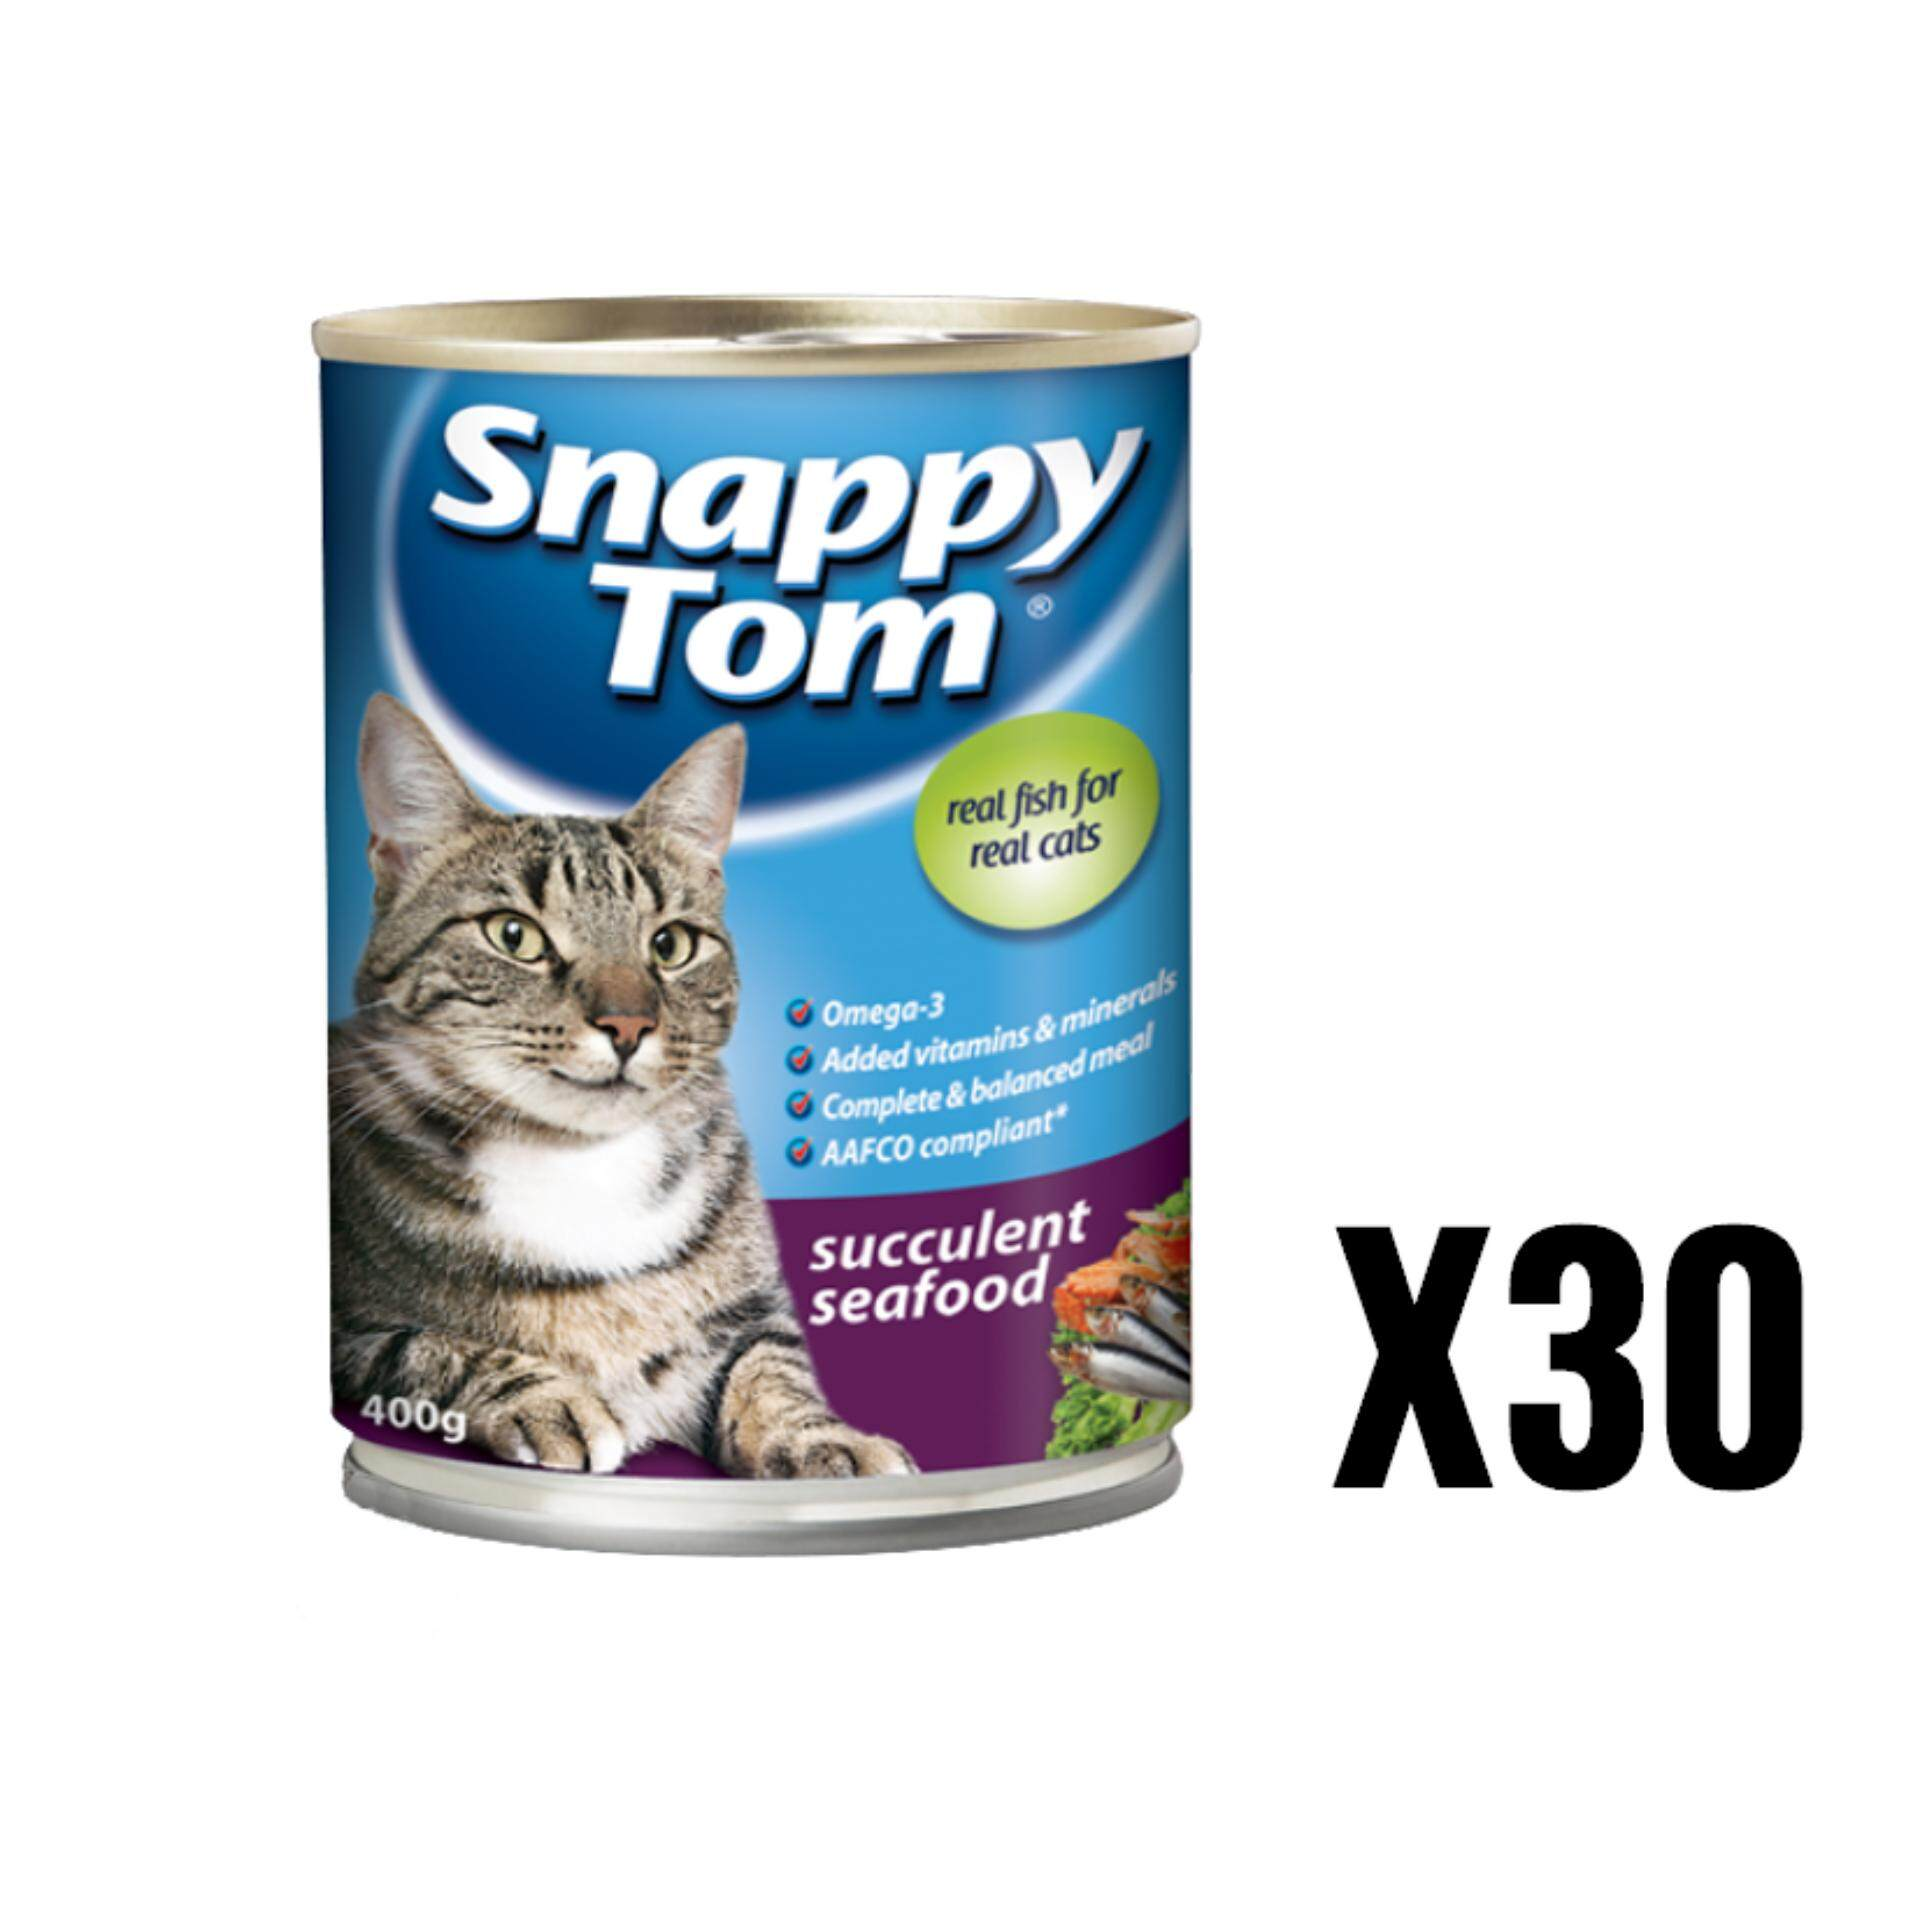 Snappy Tom Succulent Seafood 400G